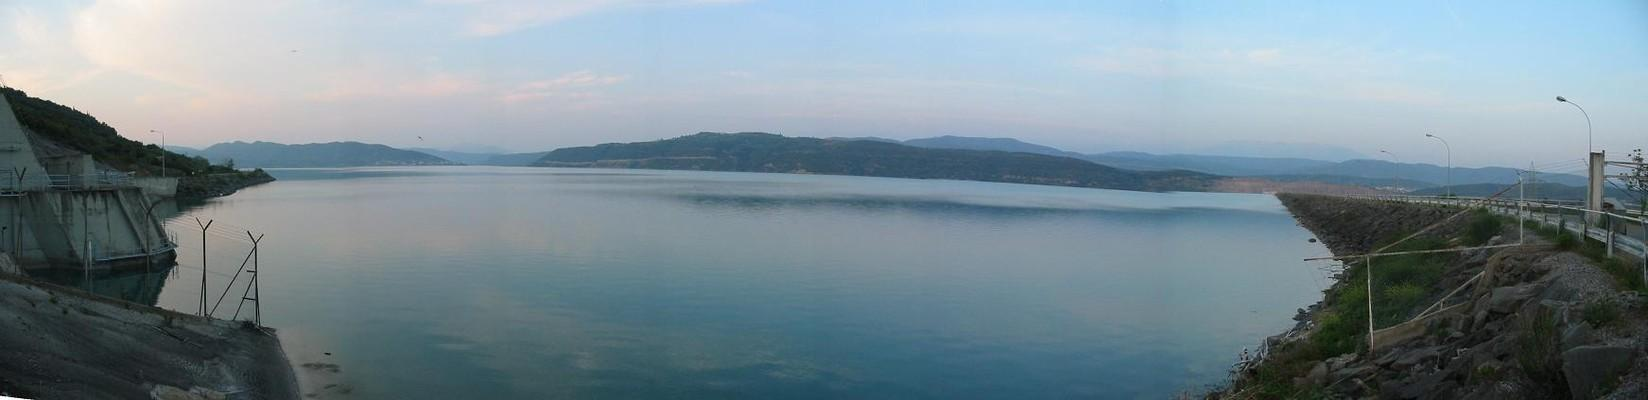 Veligosti, Megalopolis, Arcadia Stratos Lake  photo by Κώστας Κουκούλης, wikipedia.org